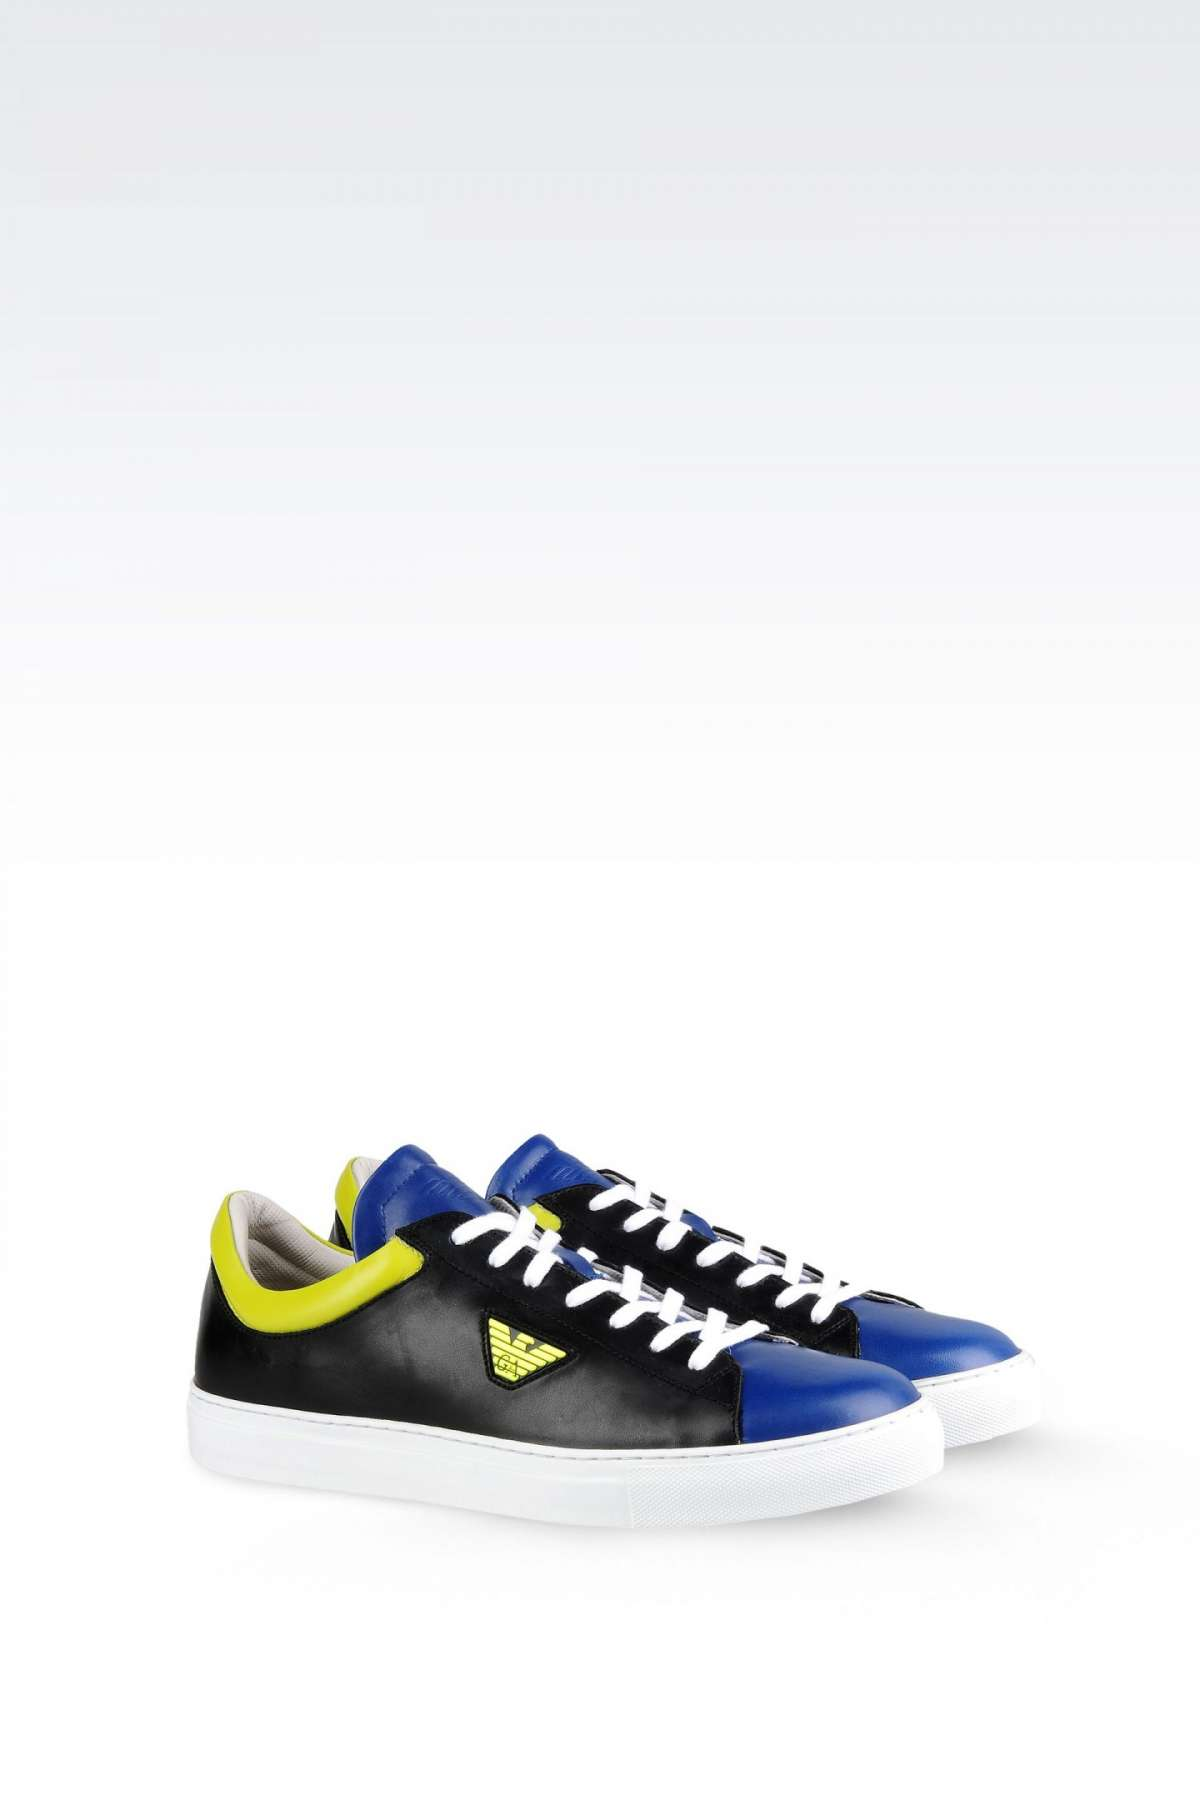 Sneakers in color block Emporio Armani